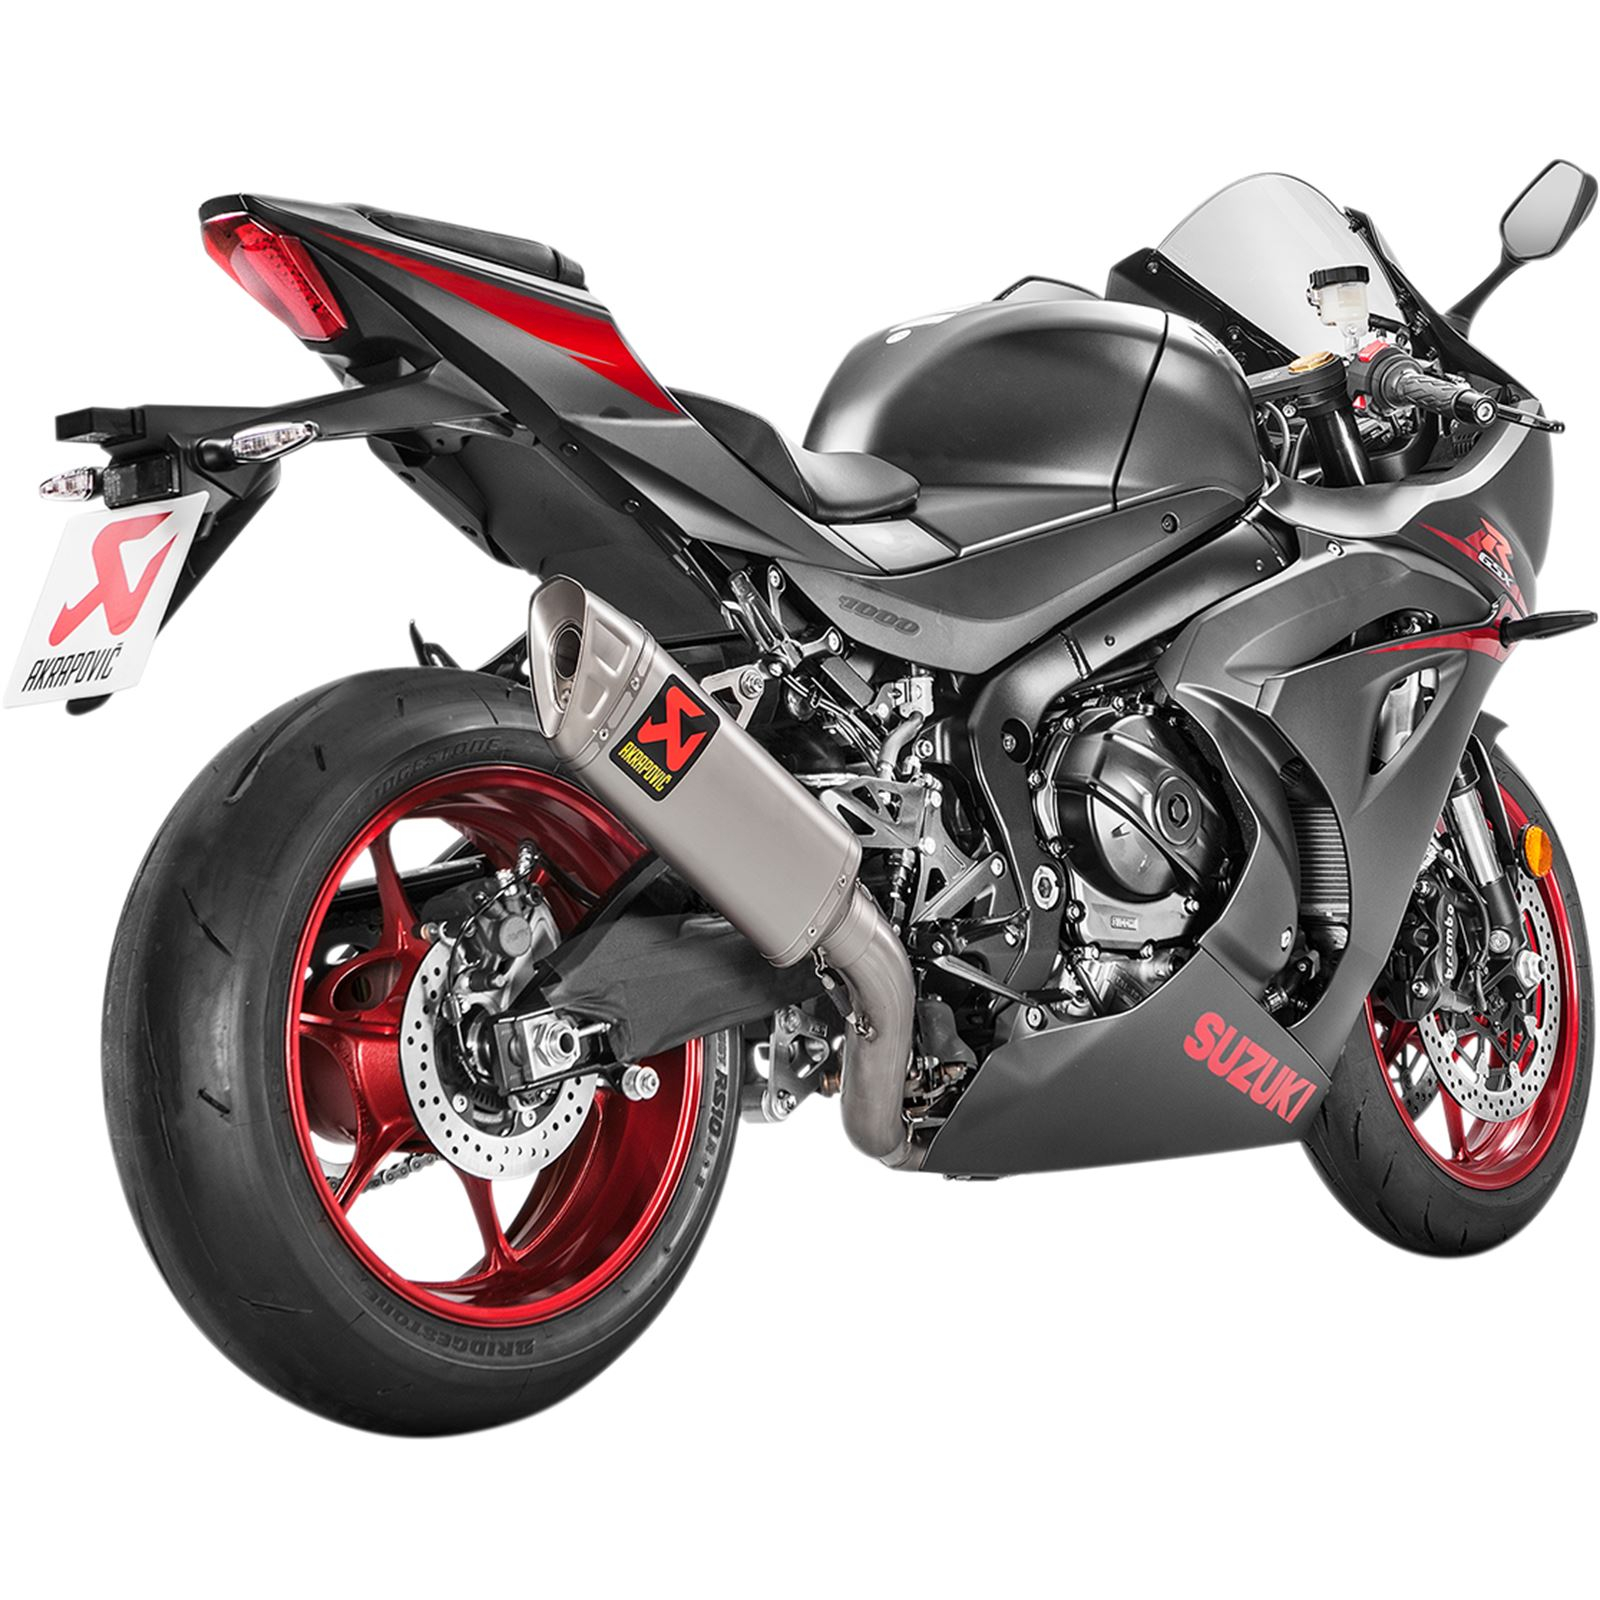 Akrapovic Race Exhaust - Stainless Steel/Titanium